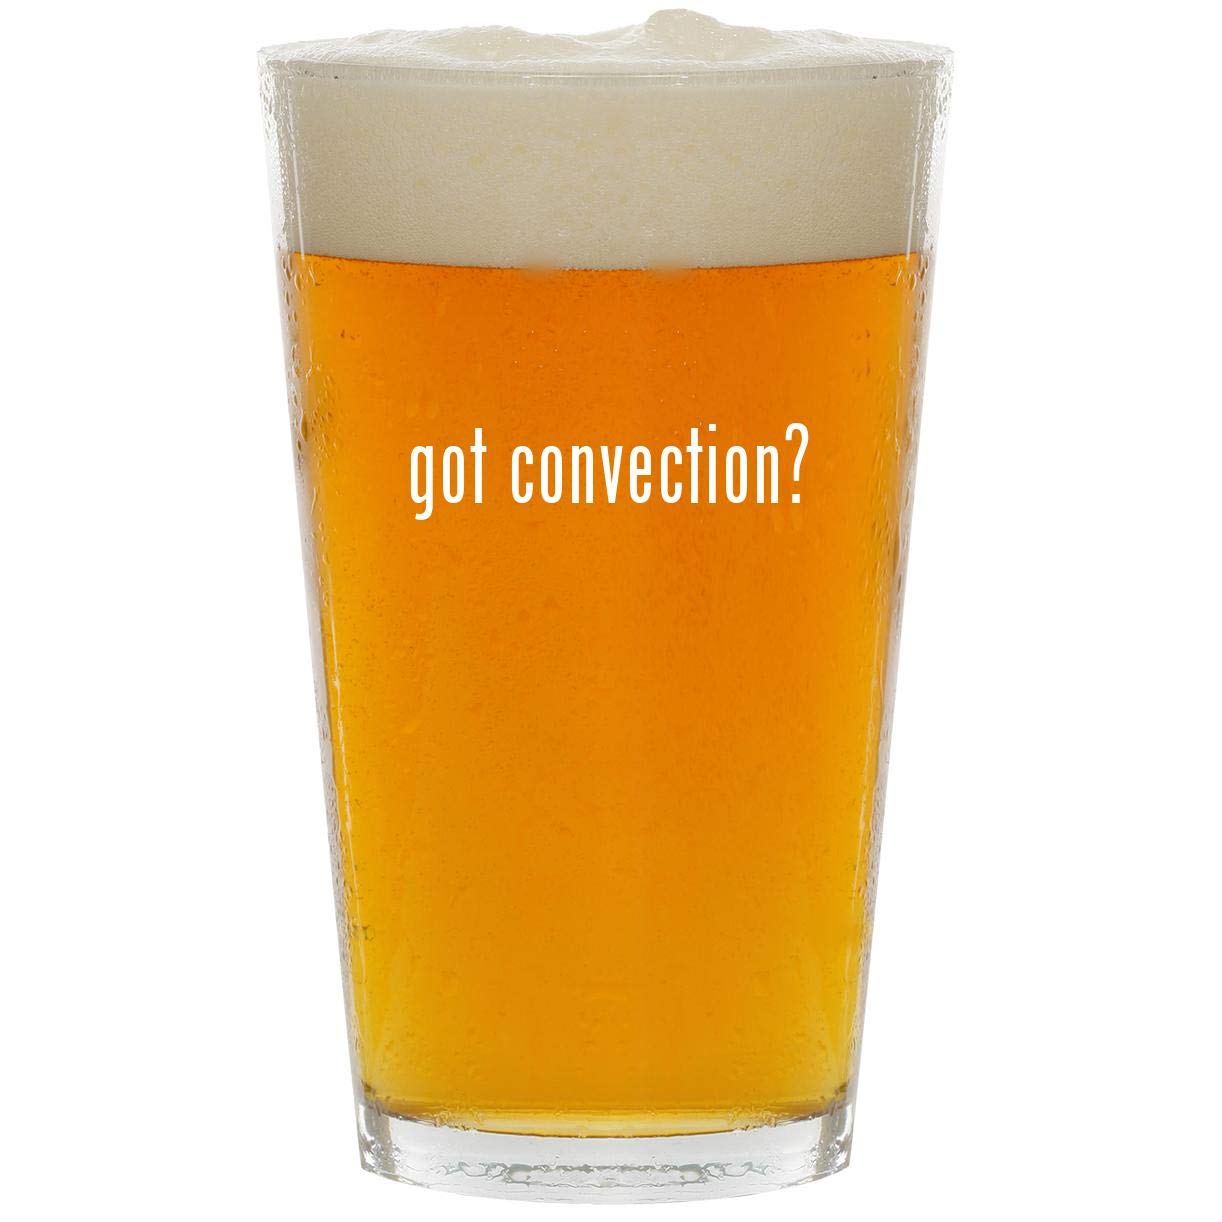 got convection? - Glass 16oz Beer Pint